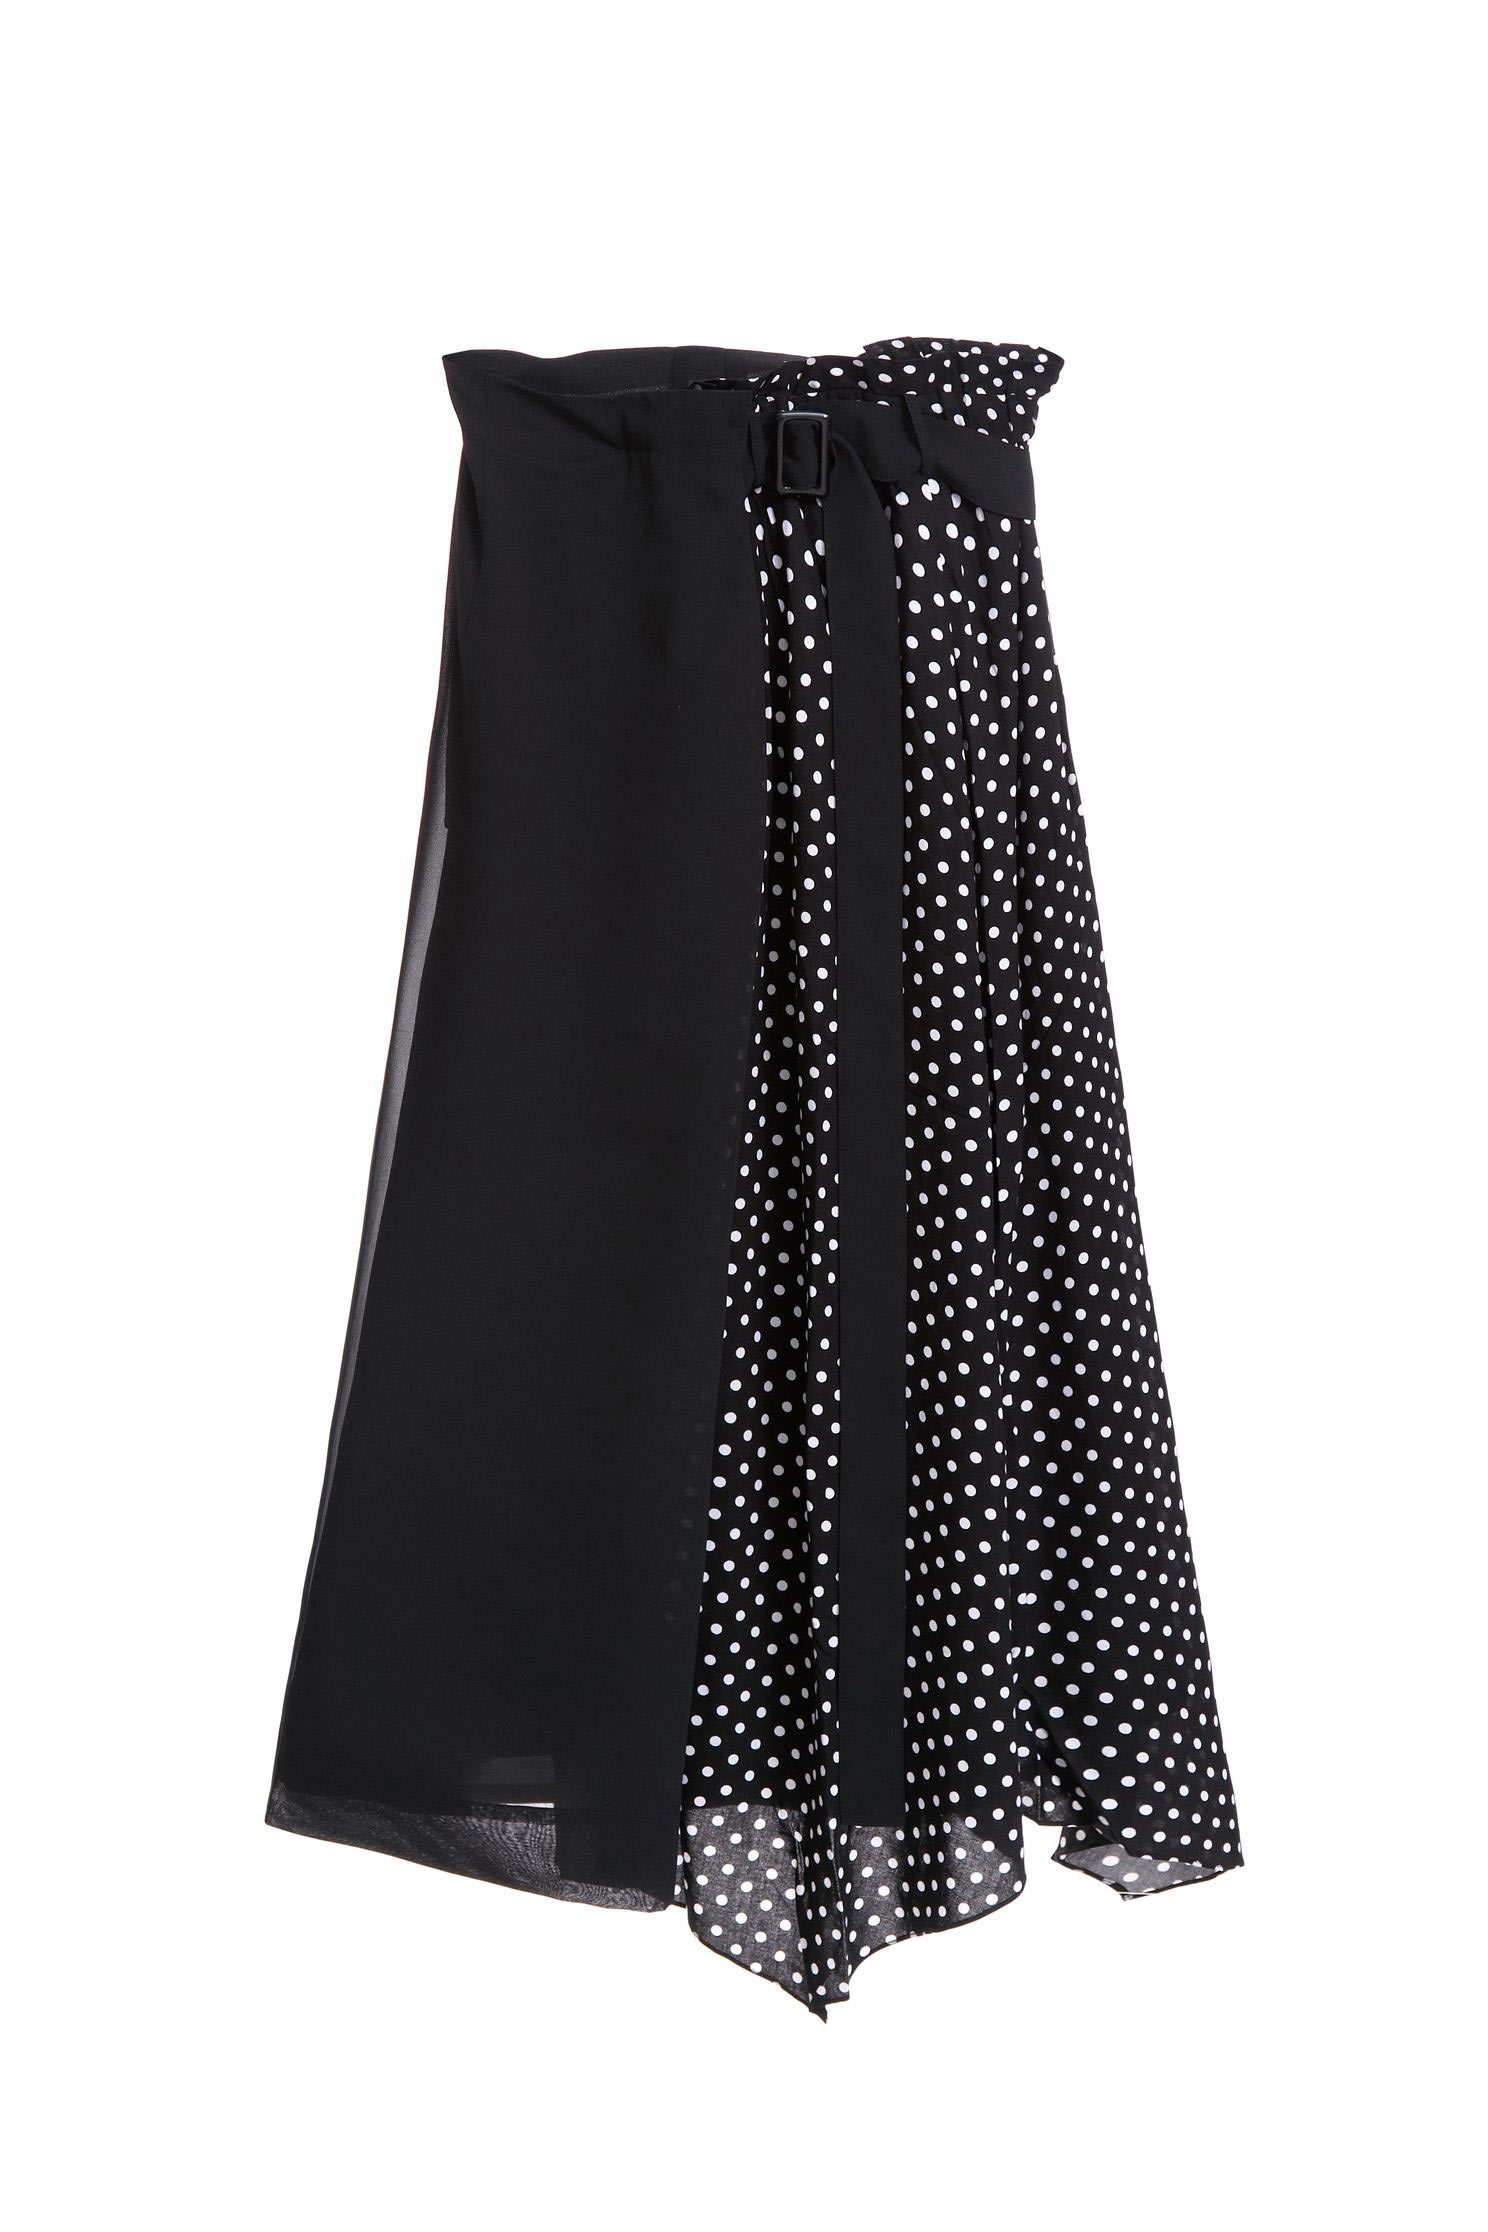 Polka dots classic design skirt